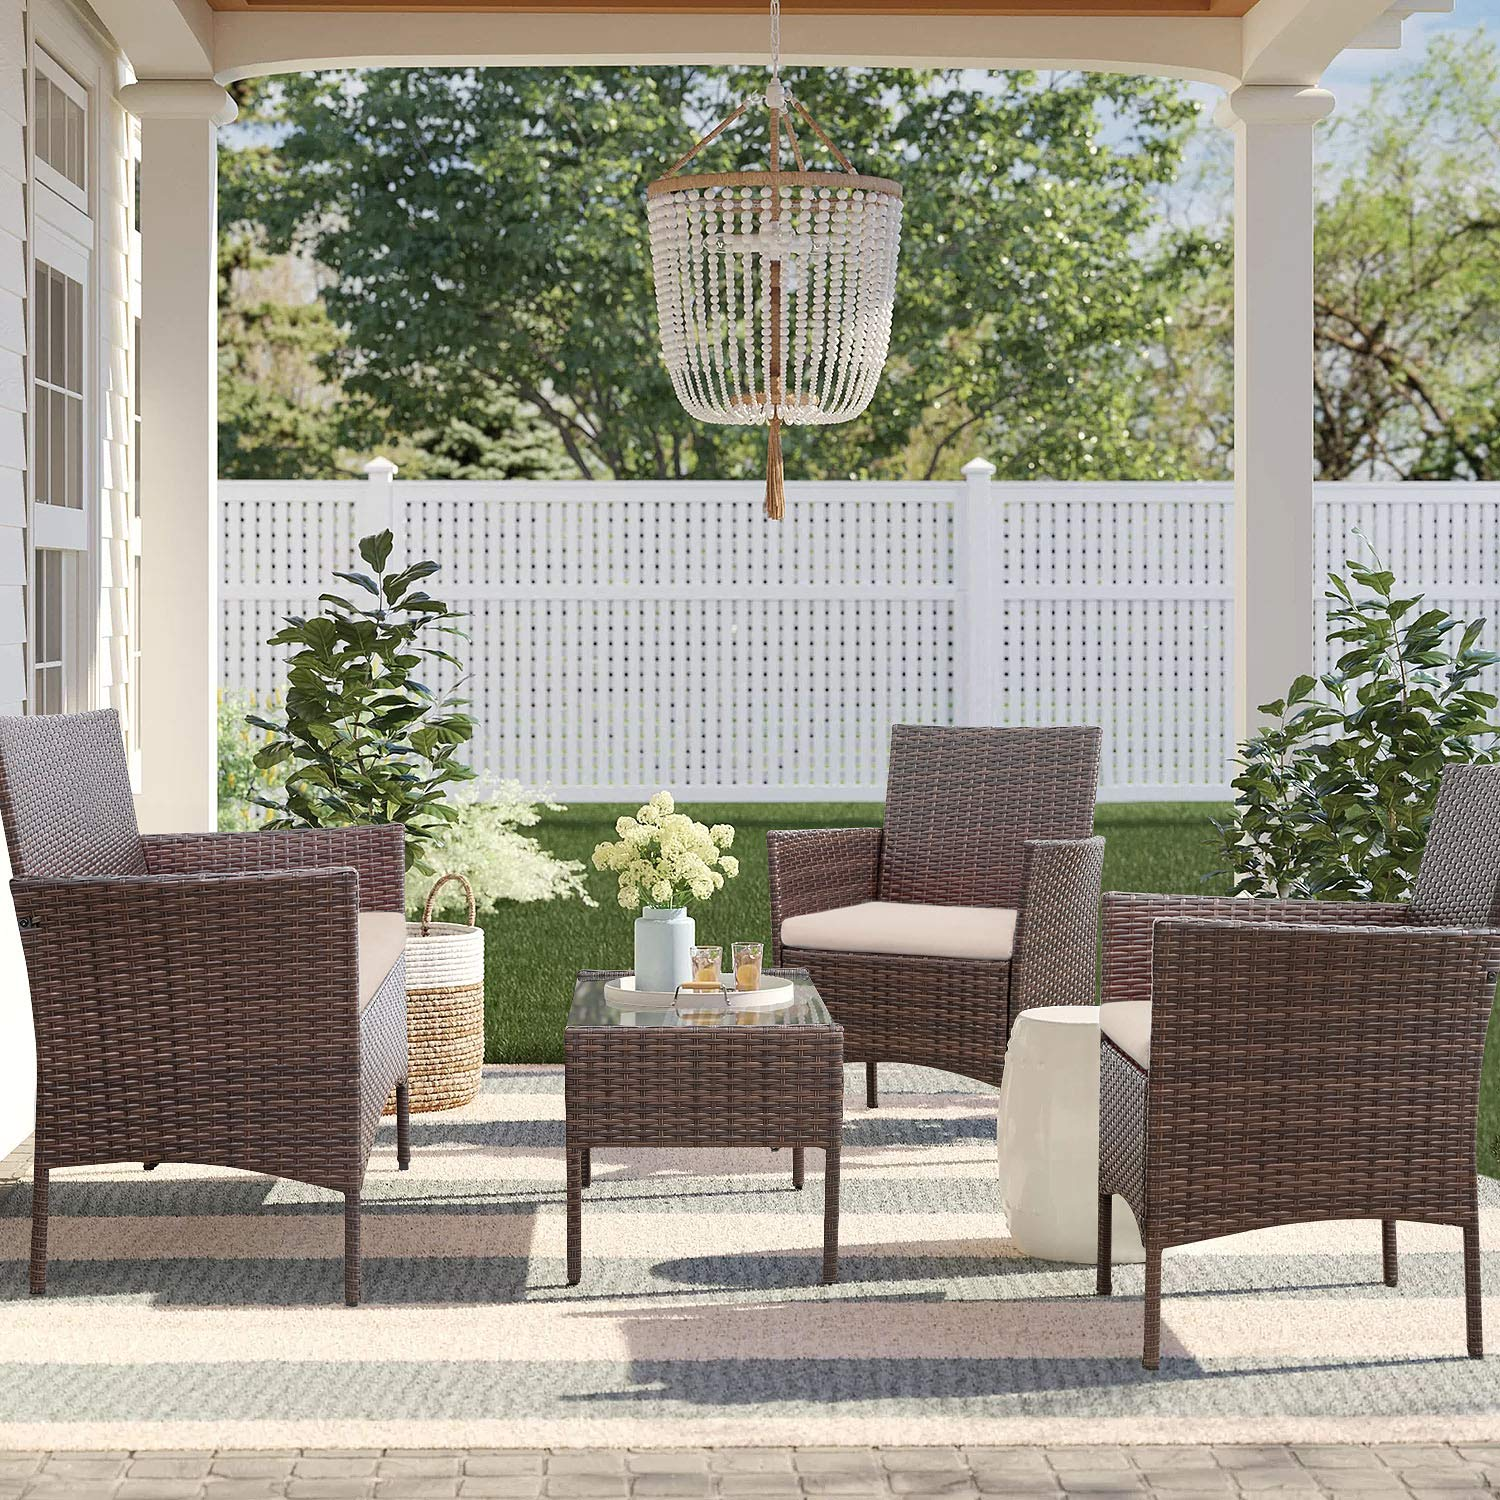 Homall 4 Pieces Outdoor Patio Furniture Sets Rattan Chair Wicker